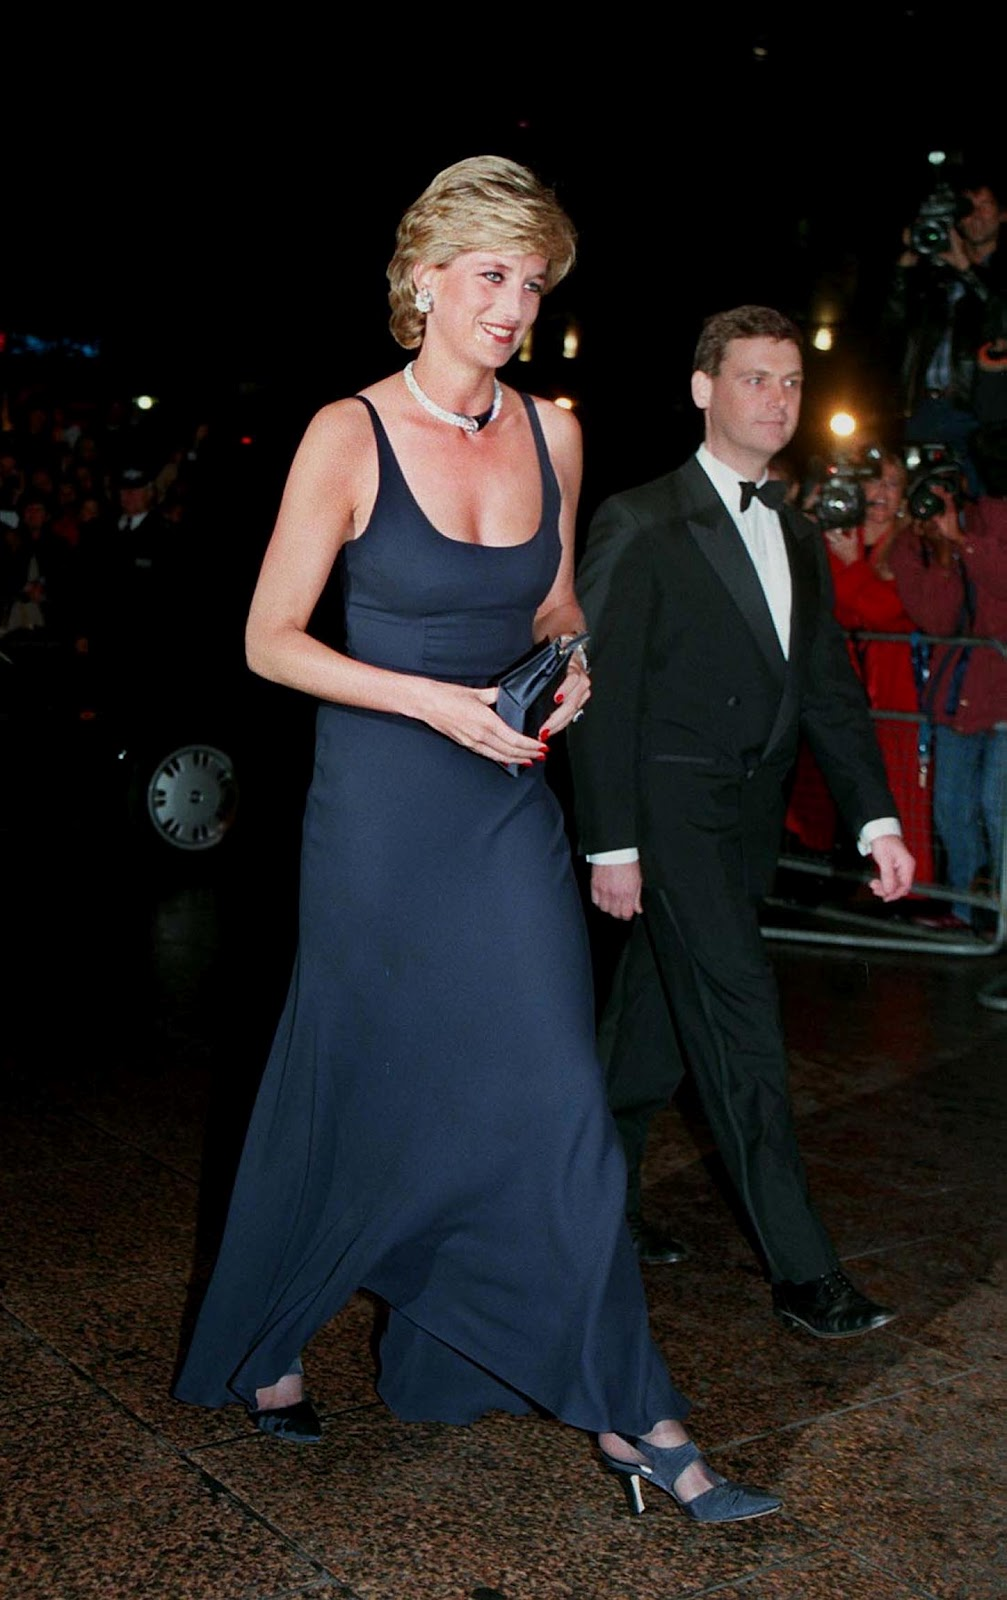 Princess Diana Had to Stop Wearing This Popular Brand